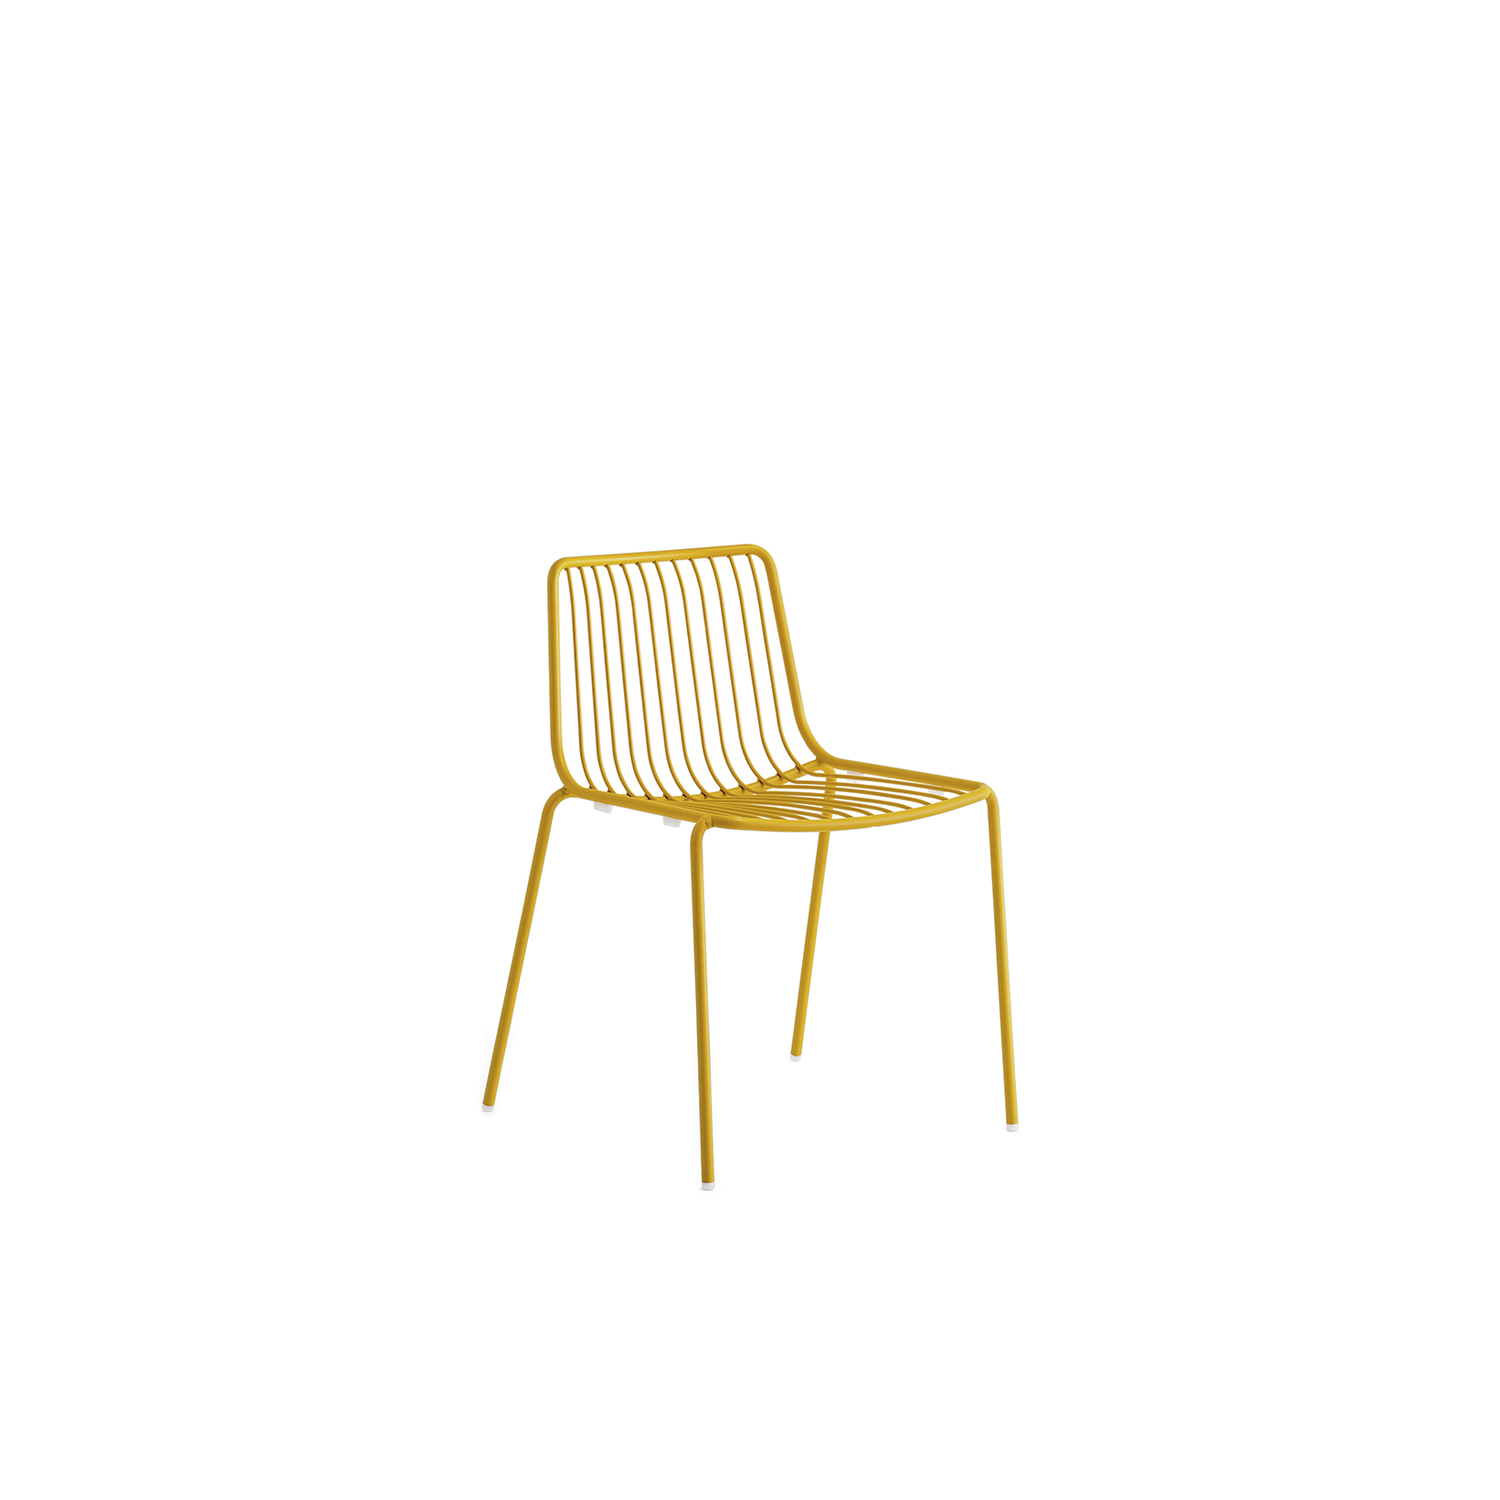 Nolita Chair - Nolita is a family of outdoor seatings which recalls the origins of a historic course started by Mario Pedrali in 1963 with his first metal garden chairs. Chair with low backrest, steel tube frame powder coated for outdoor use.